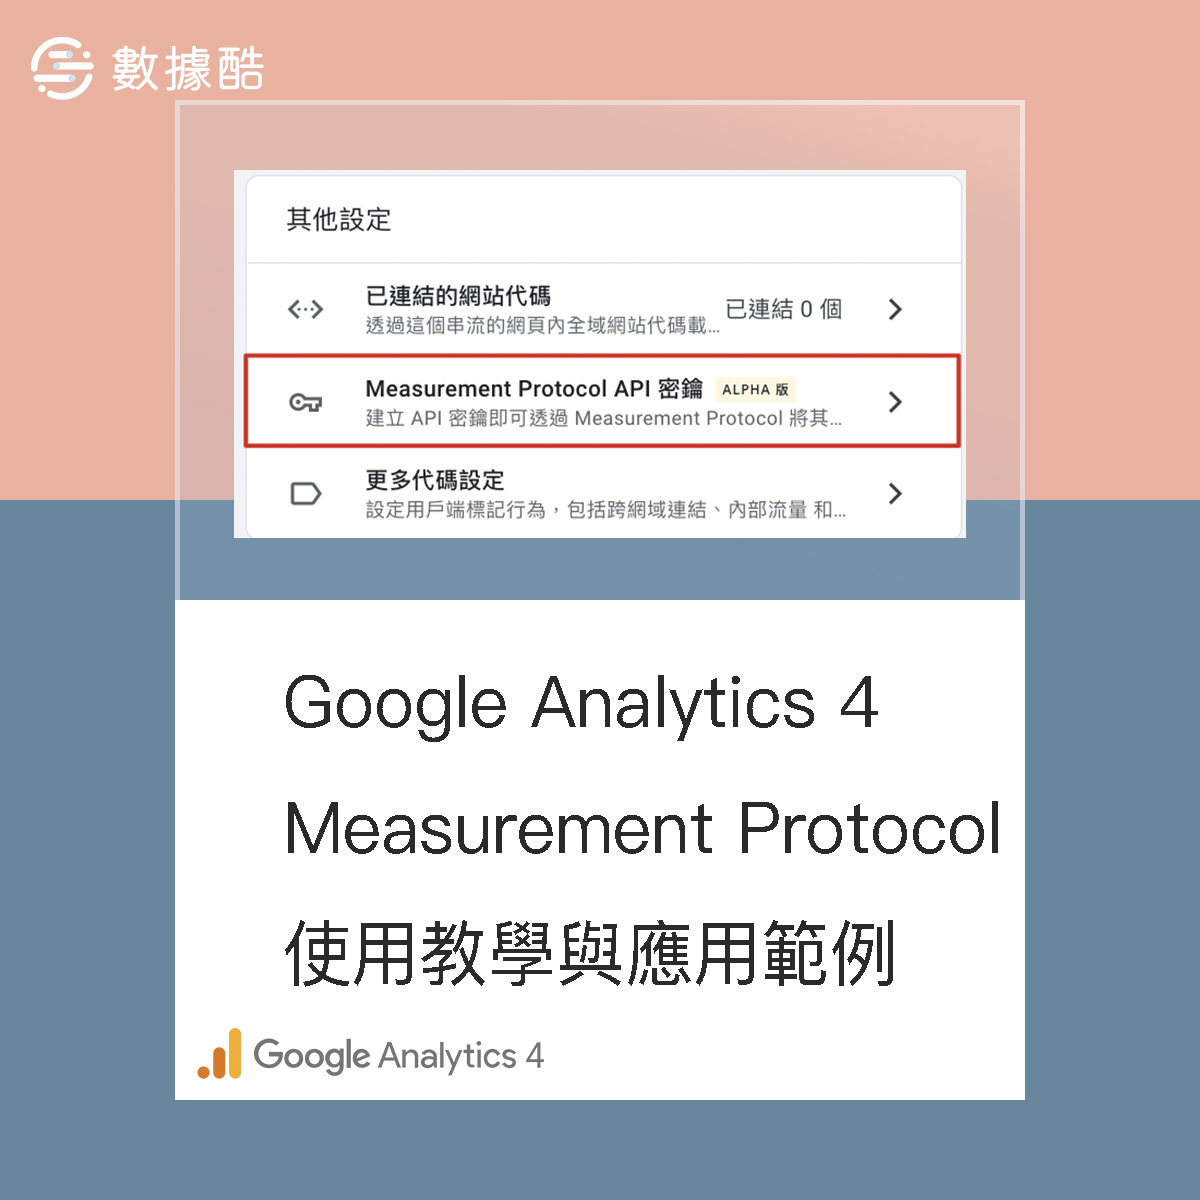 Google Analytics 4 Measurement Protocol API 使用教學與應用範例